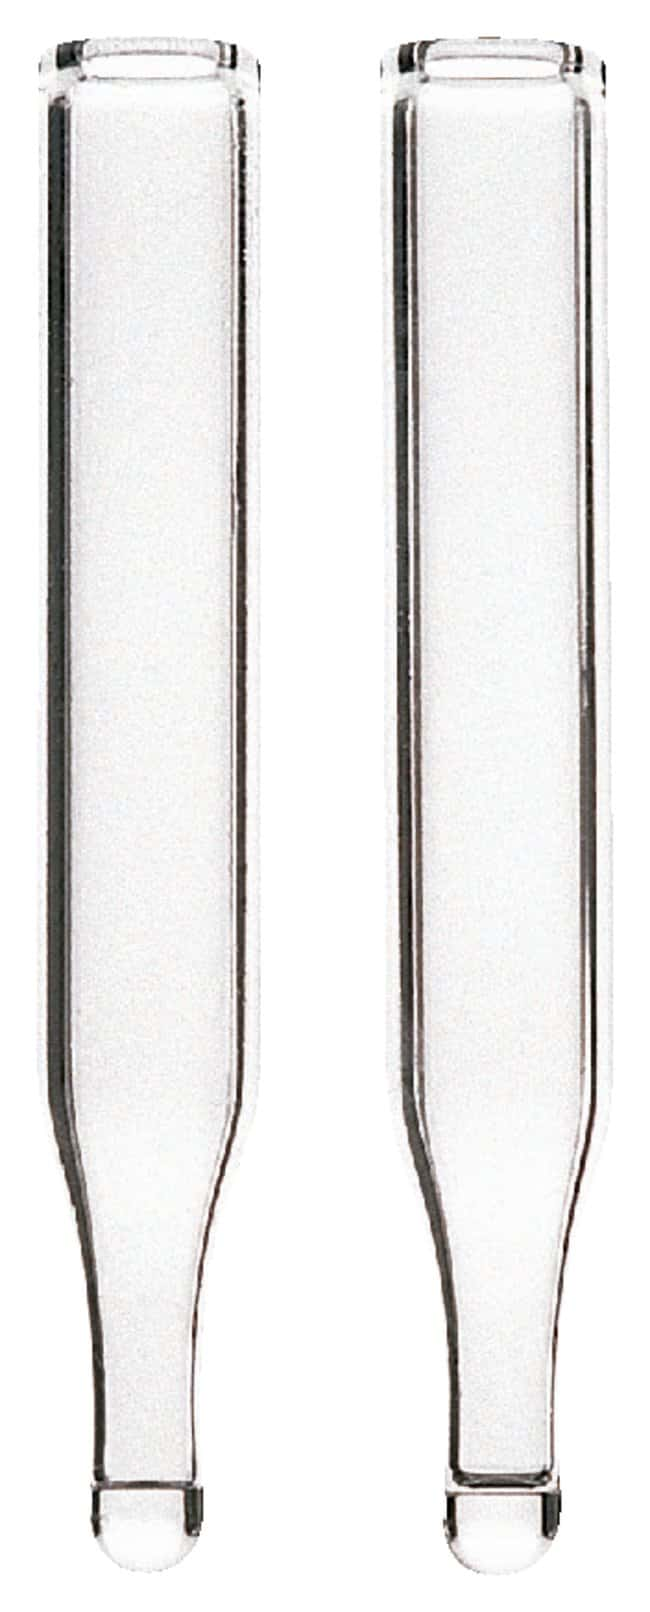 Thermo Scientific National Inserts for Standard-Opening Vials:Chromatography:Autosampler